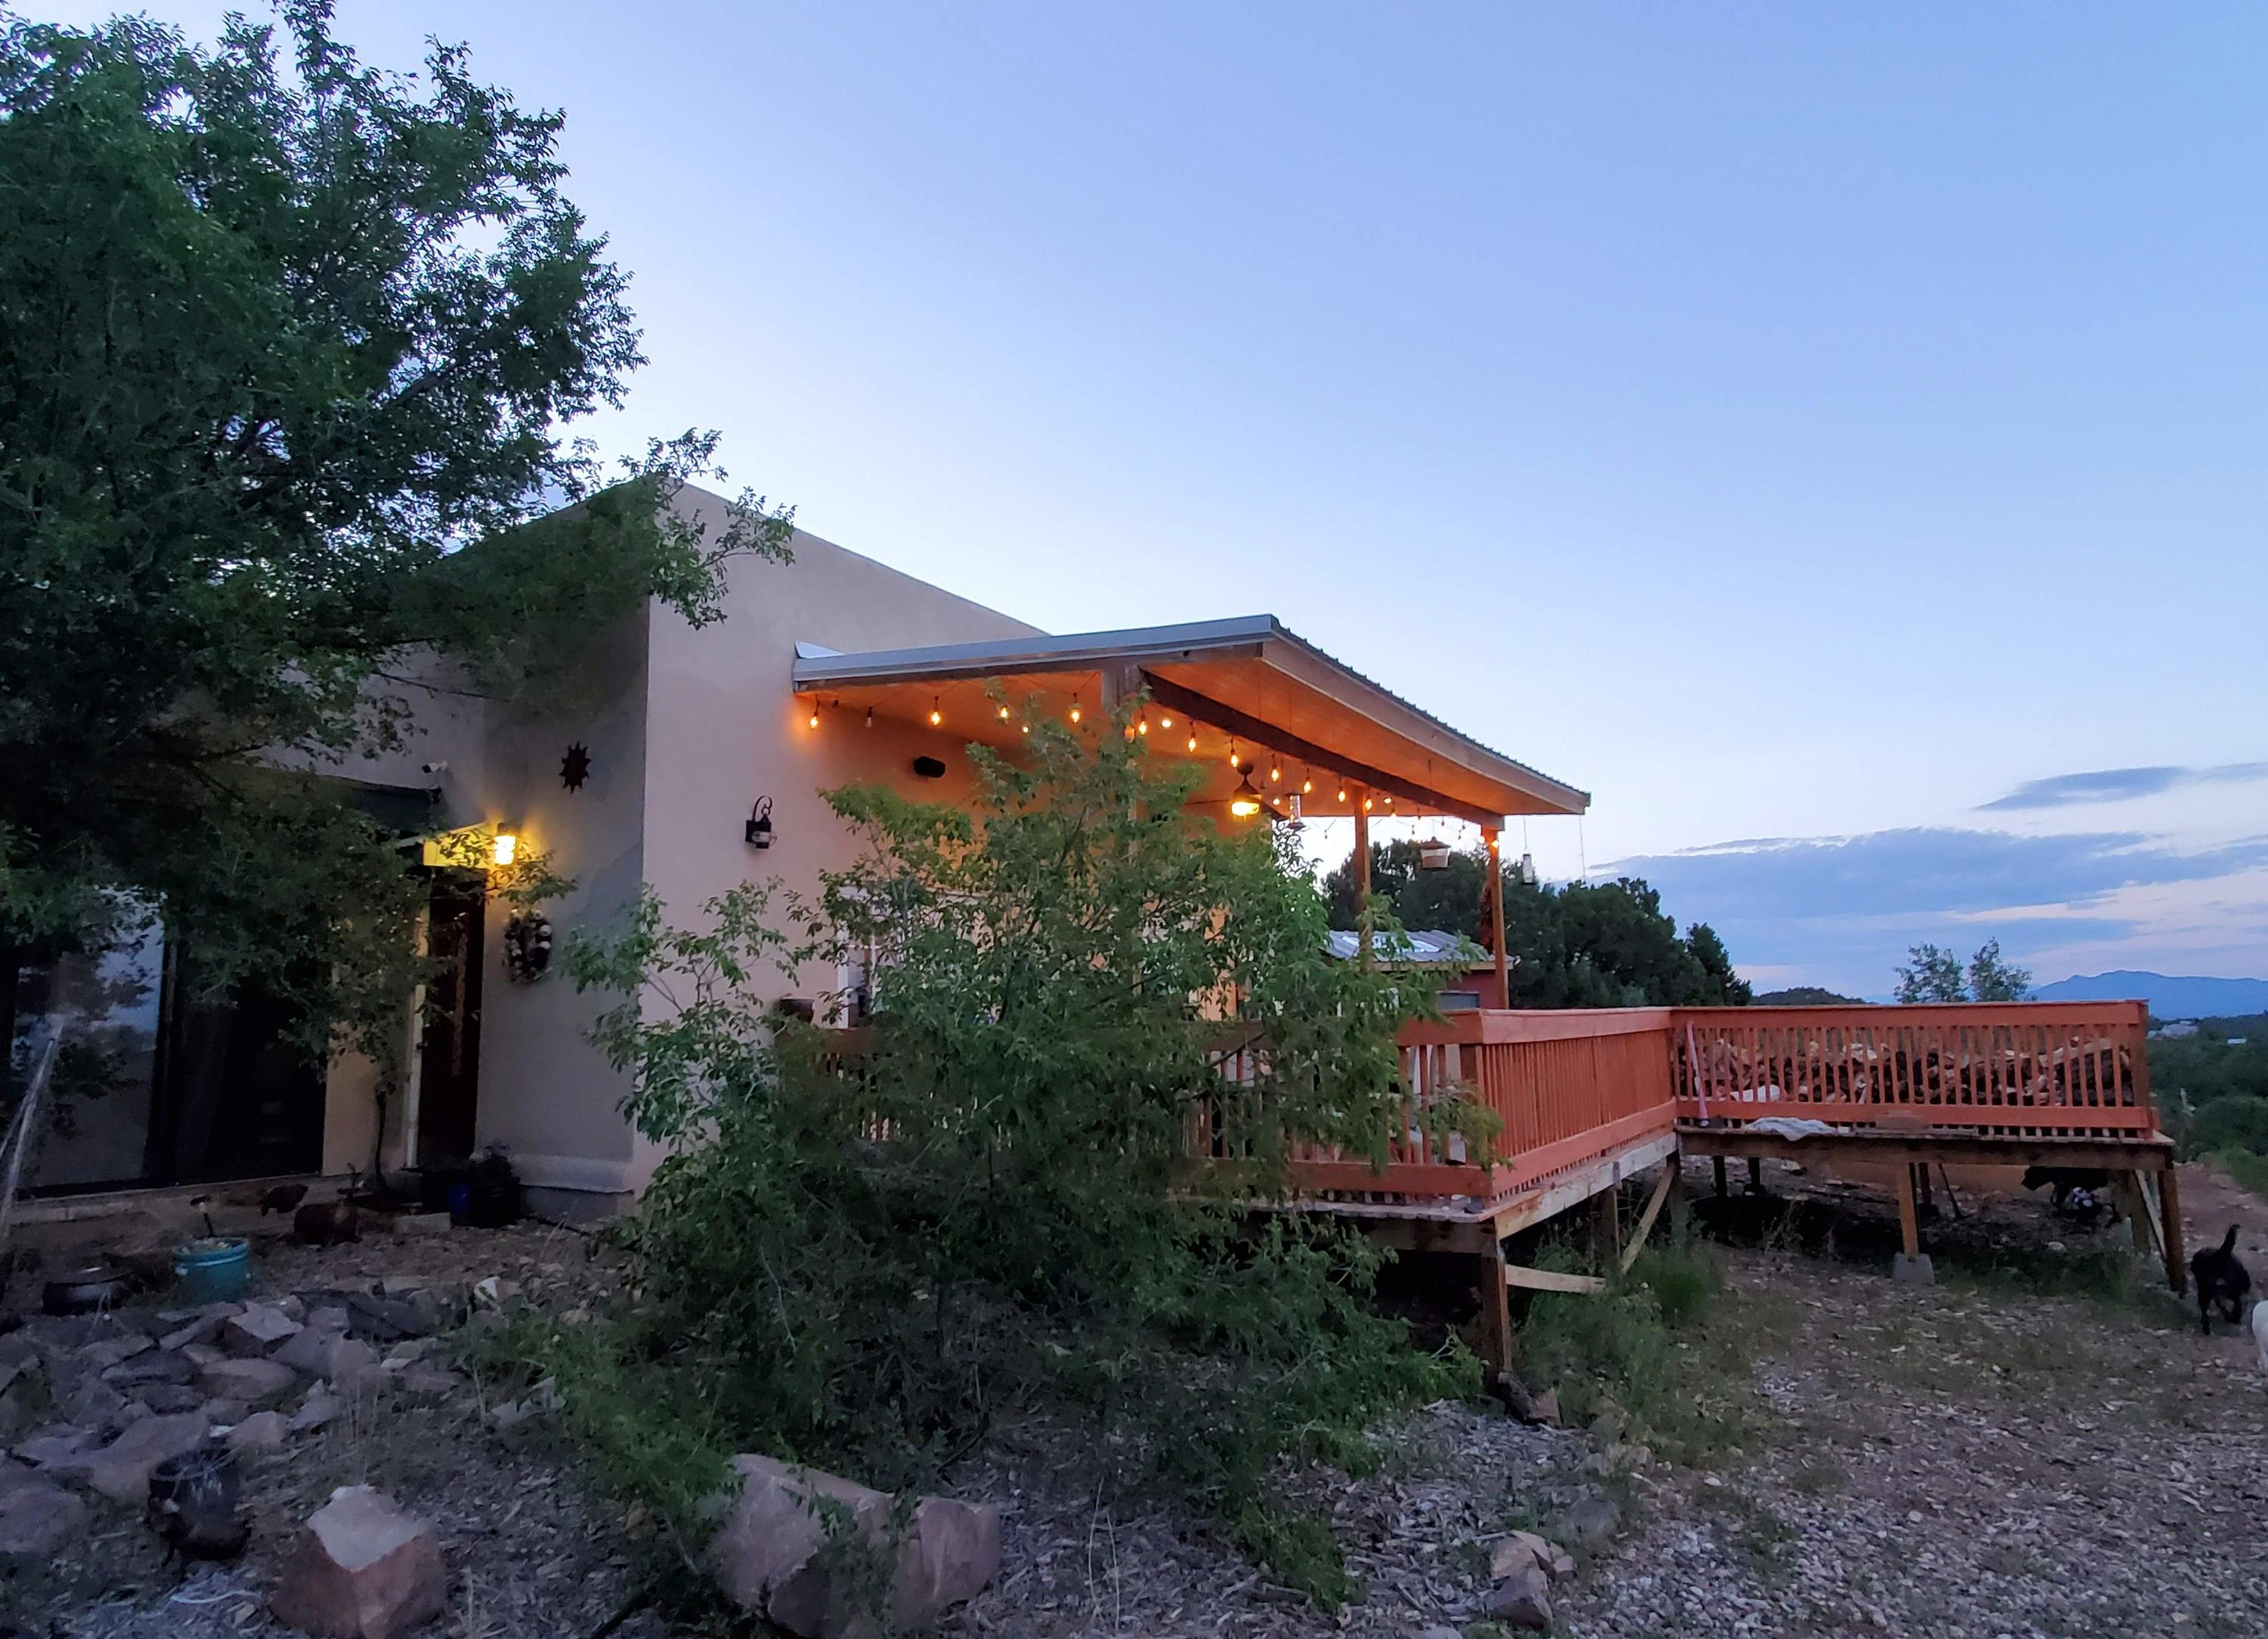 Dream of living in your own private mountain retreat with gorgeous views and plenty of outdoor living space, but with easy access to Albuquerque and all its amenities? If so, you'll love this home! This property is close to 6.5 acres making it extremely private, with panoramic views all the way from the Manzano mountains up to Santa Fe. Yet it's only 4 miles north of I-40, making an easy 20min commute into the city. Besides a spectacular location, this property boasts a 2350 sq ft home and a finished 3200sq ft shop, making it ideal for a business owner or for storing anything from RVs to boats to cars. You won't find anything else like it in the area!